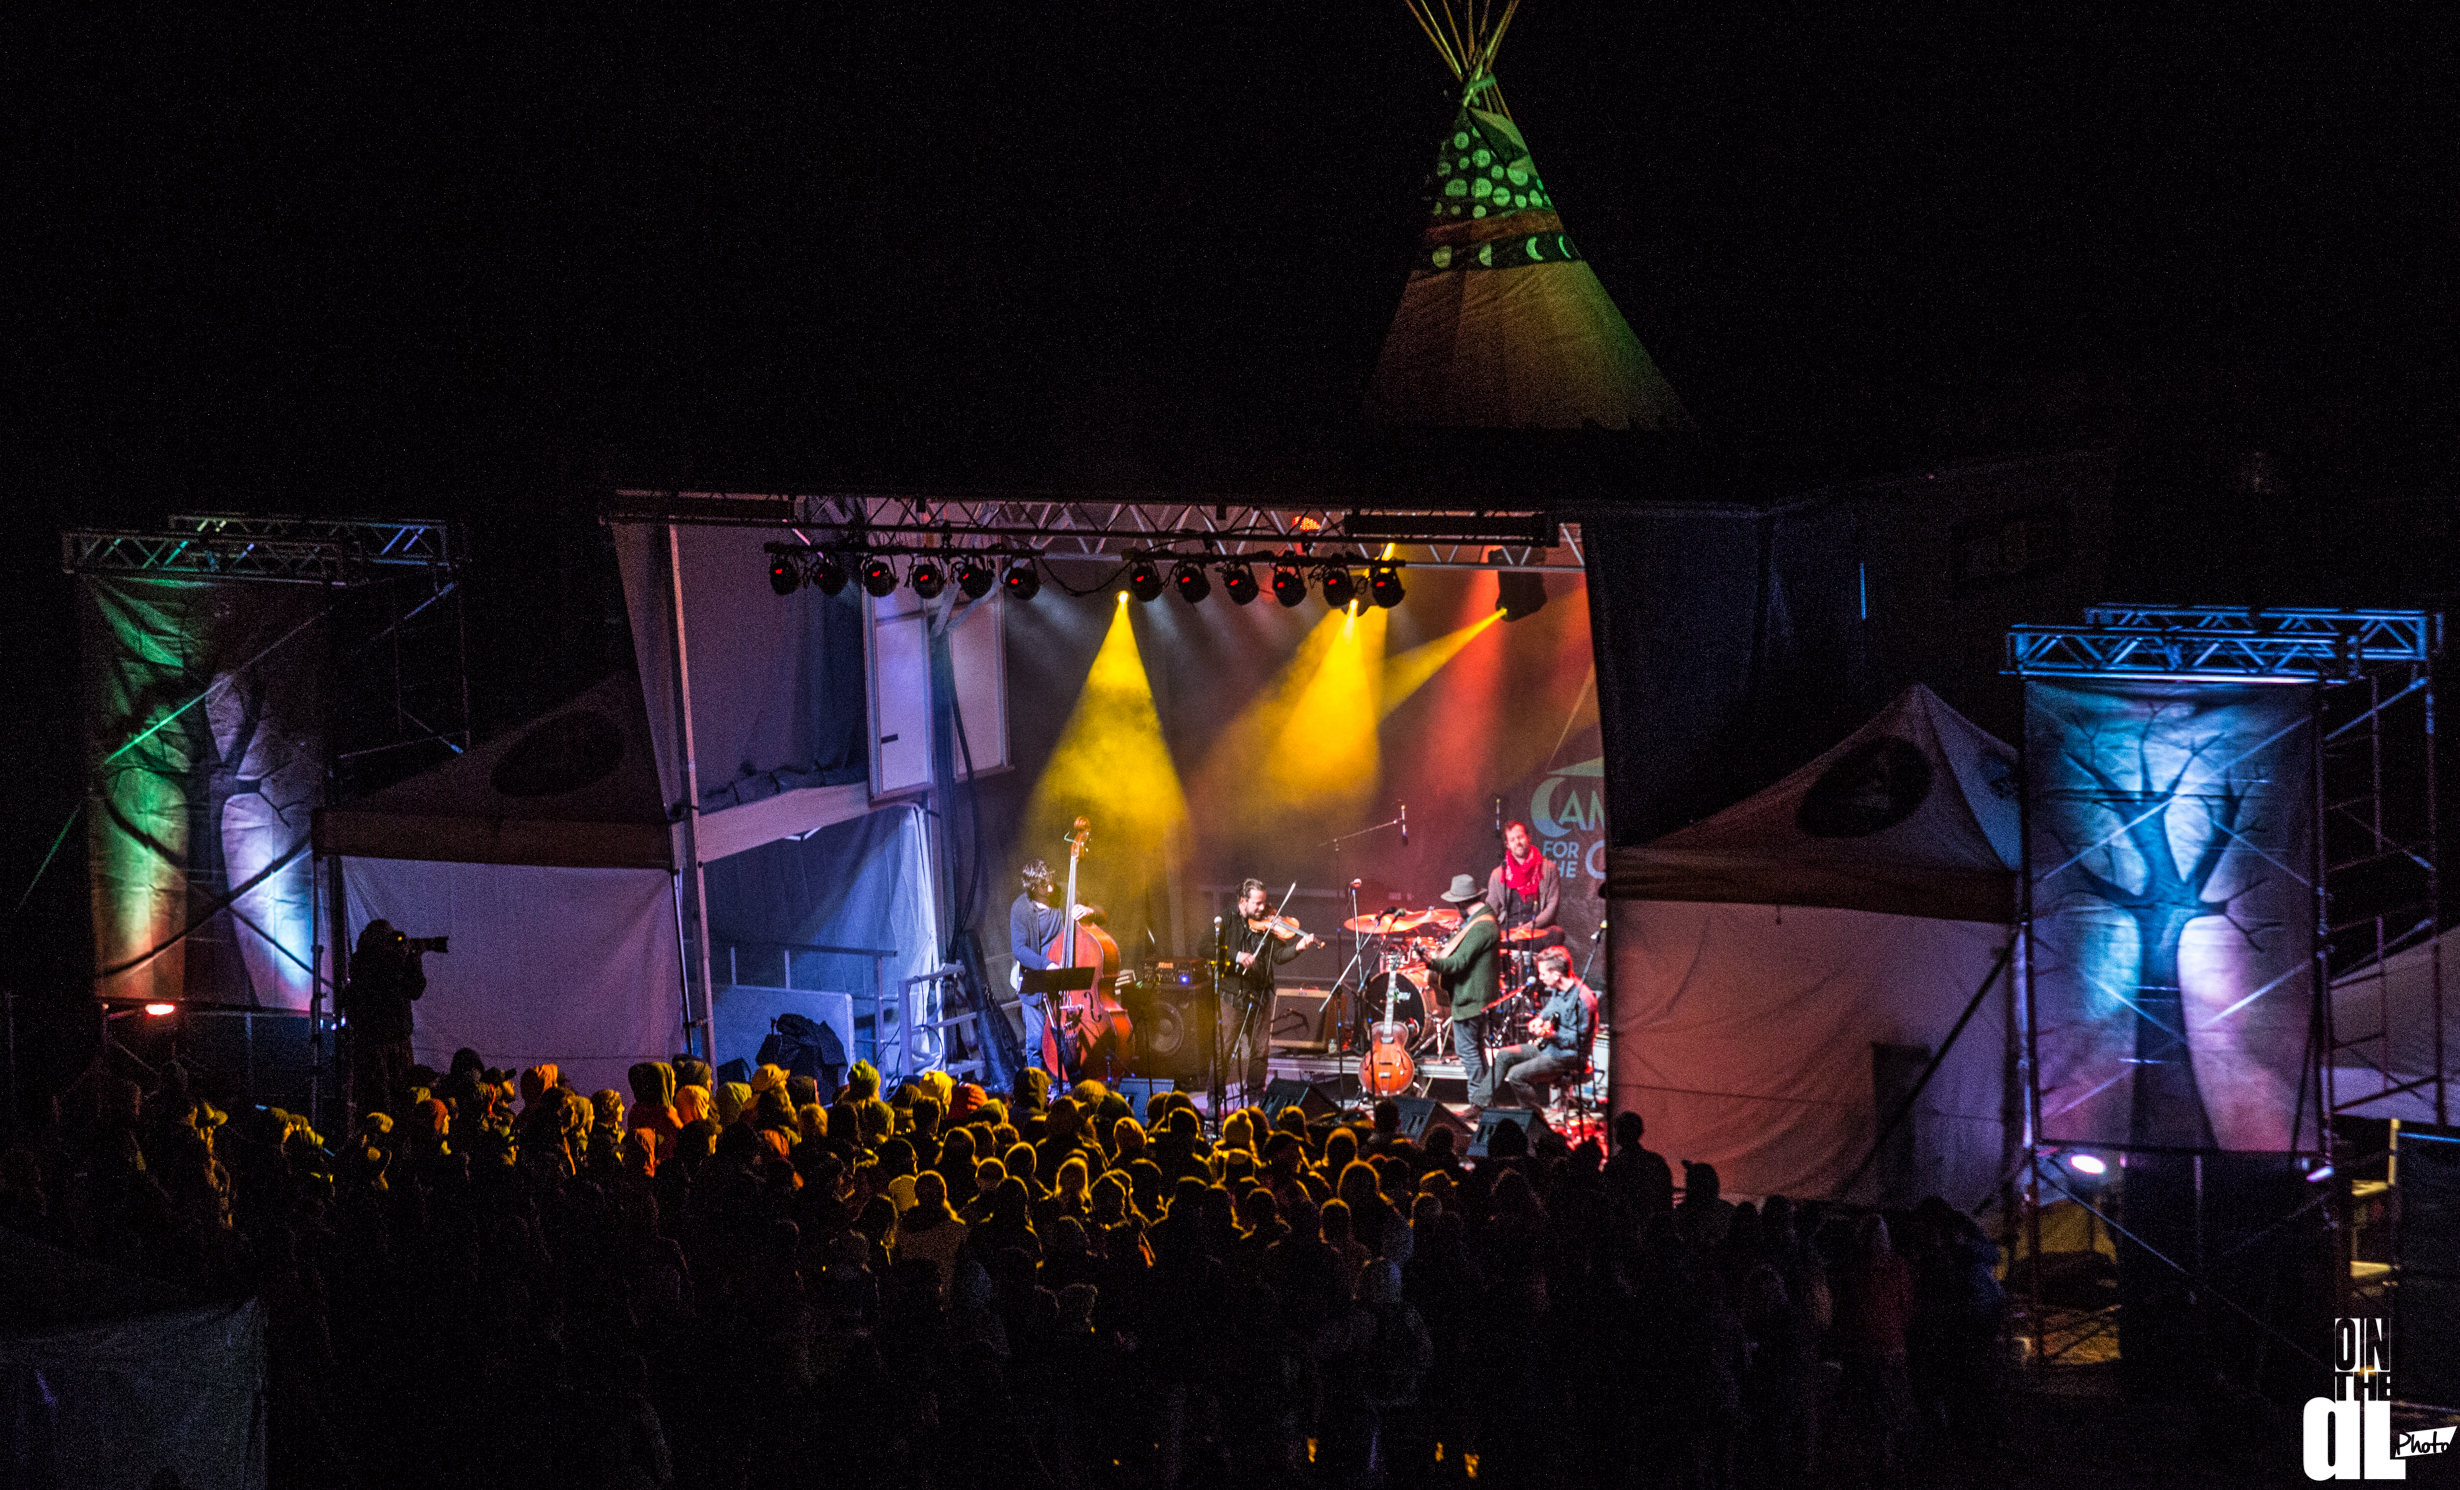 Colorado mountain town Music and Nightlife